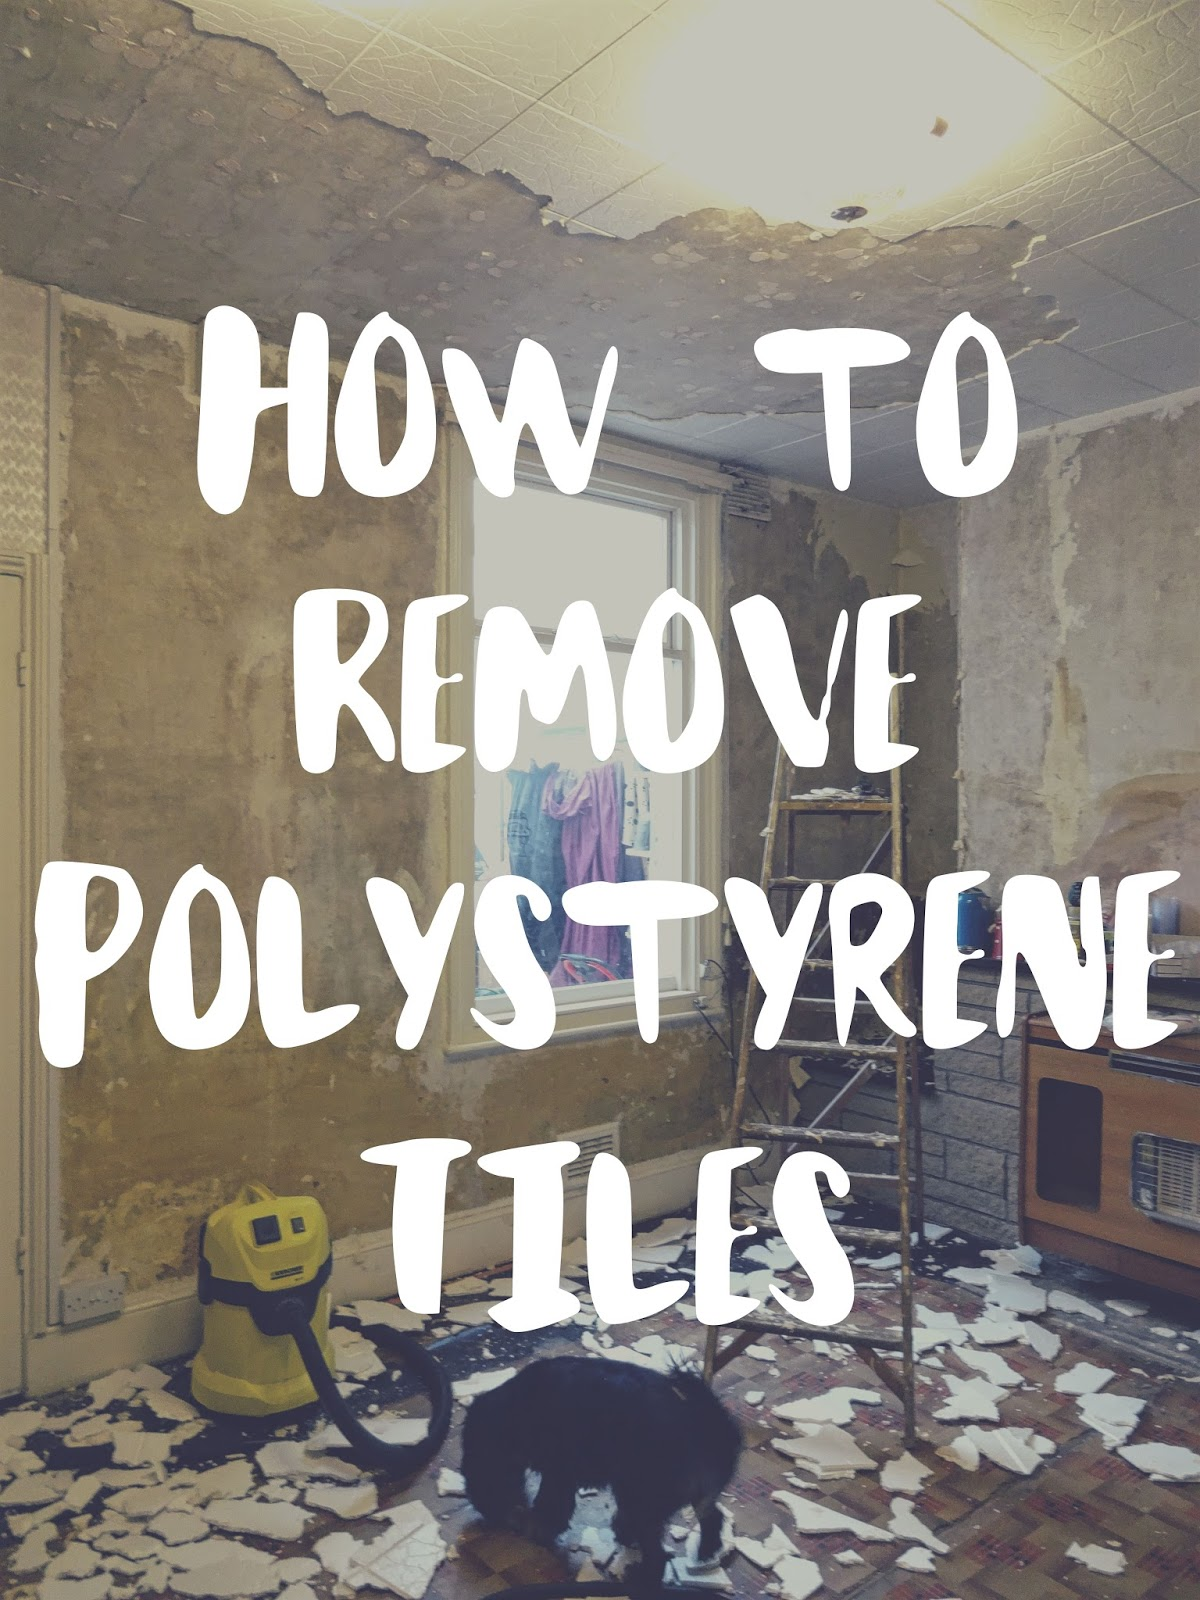 Kezzabeth uk home renovation interiors and diy blog how to remove polystyrene ceiling tiles dailygadgetfo Images